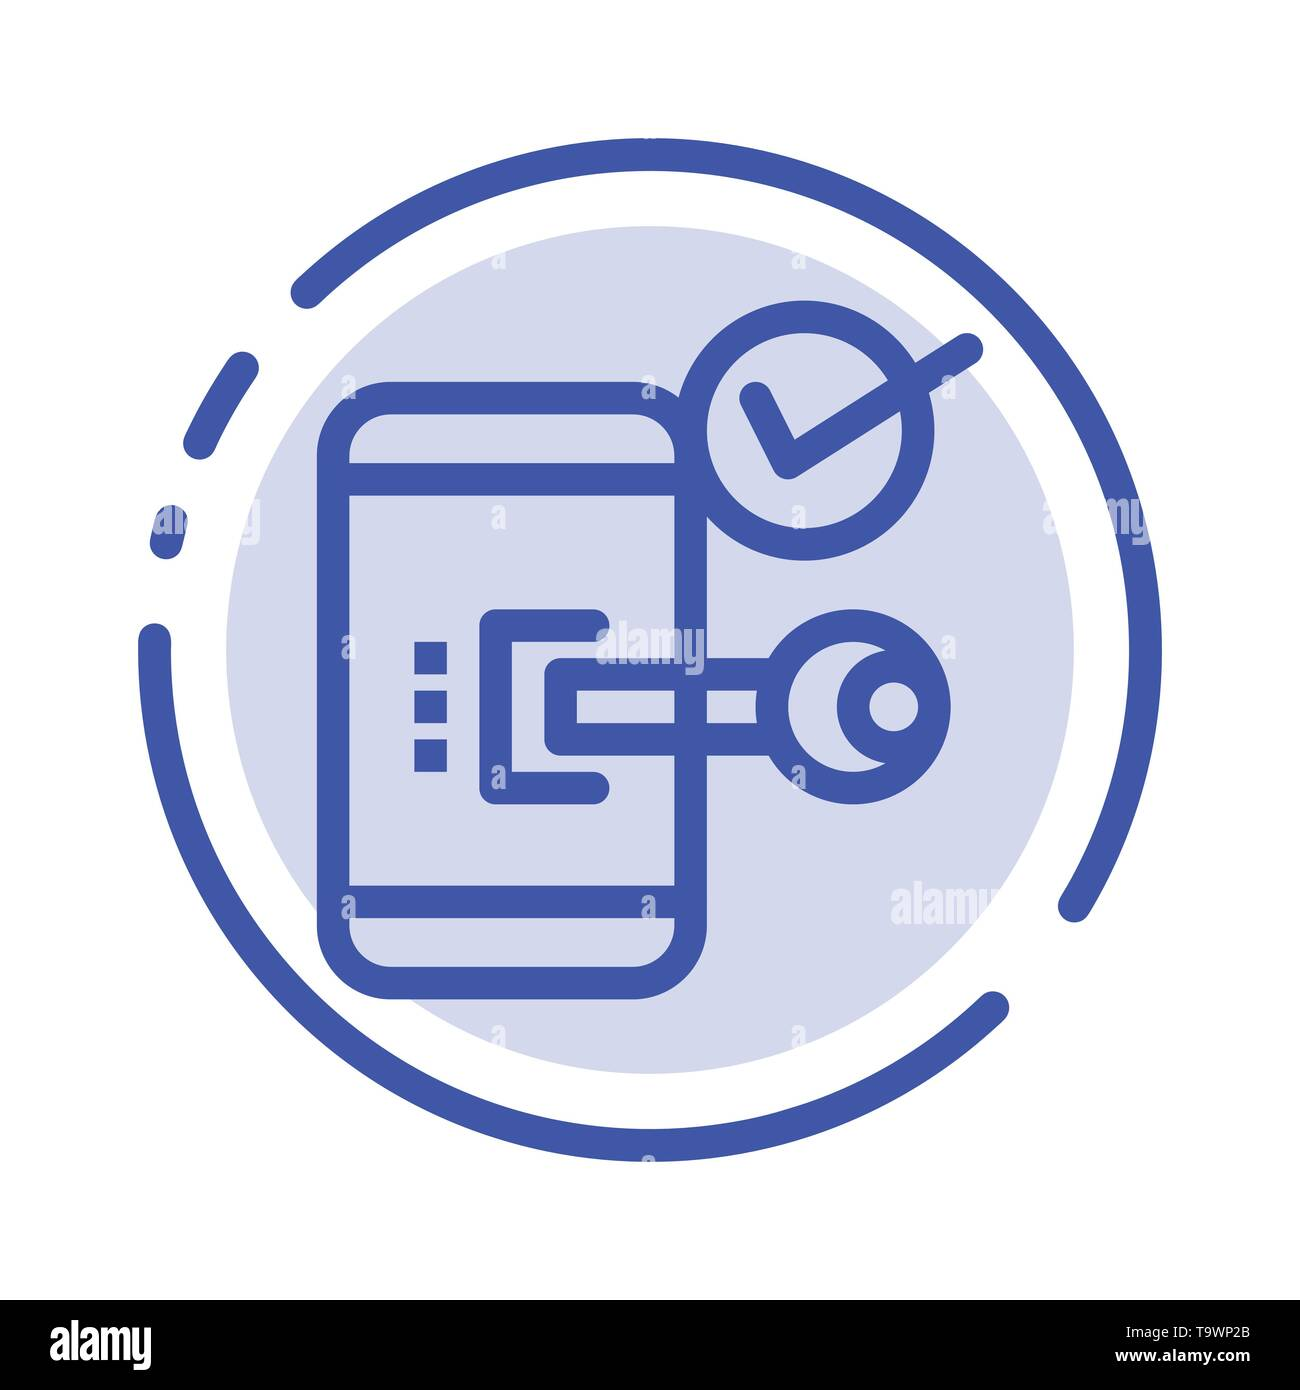 Key, Lock, Mobile, Open, Phone, Security Blue Dotted Line Line Icon - Stock Image